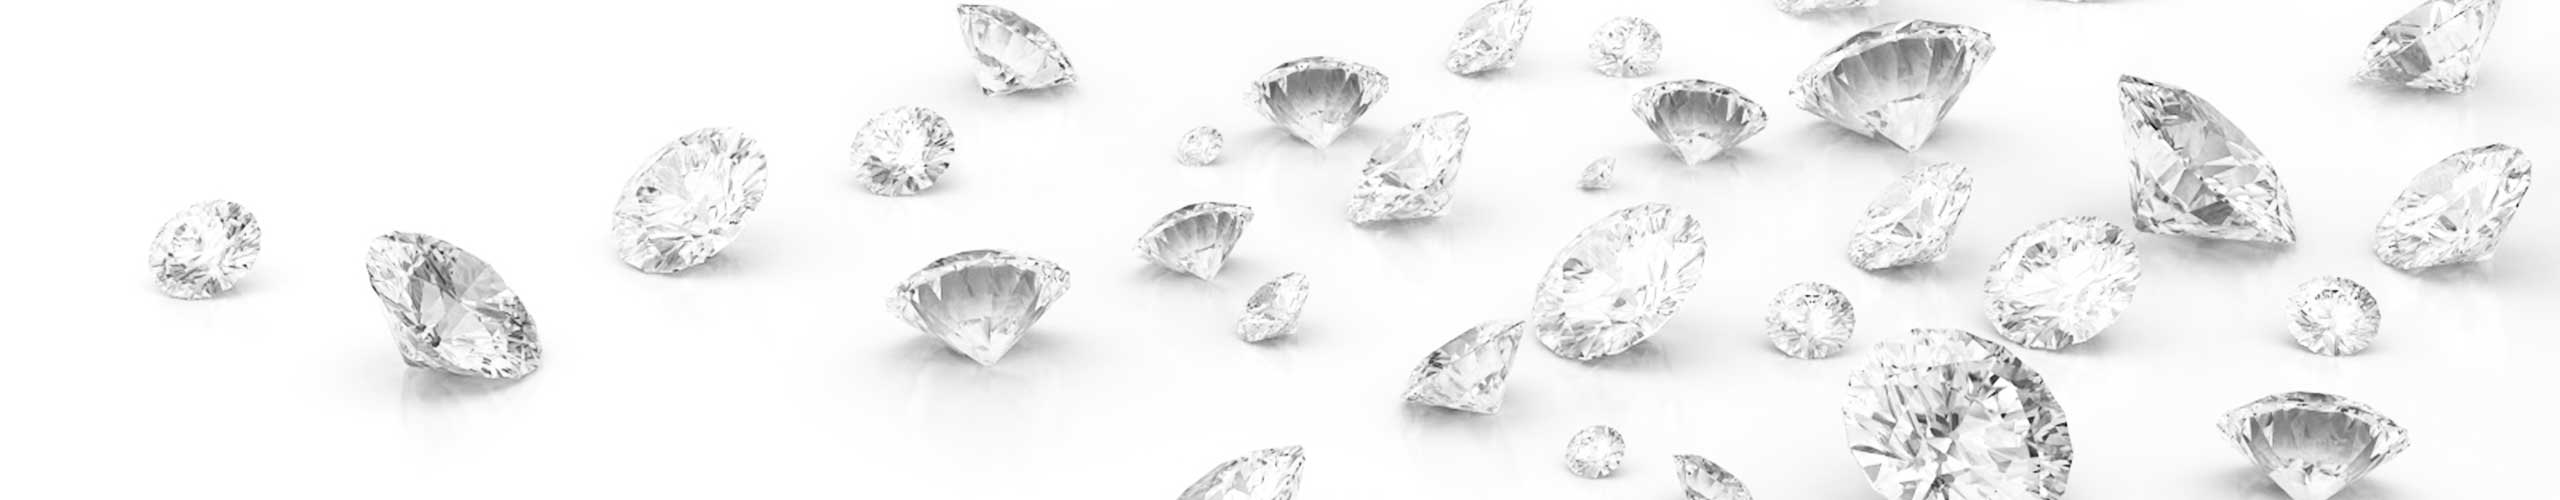 and search buy diamond diamonds online jewellery wholesale loose main image